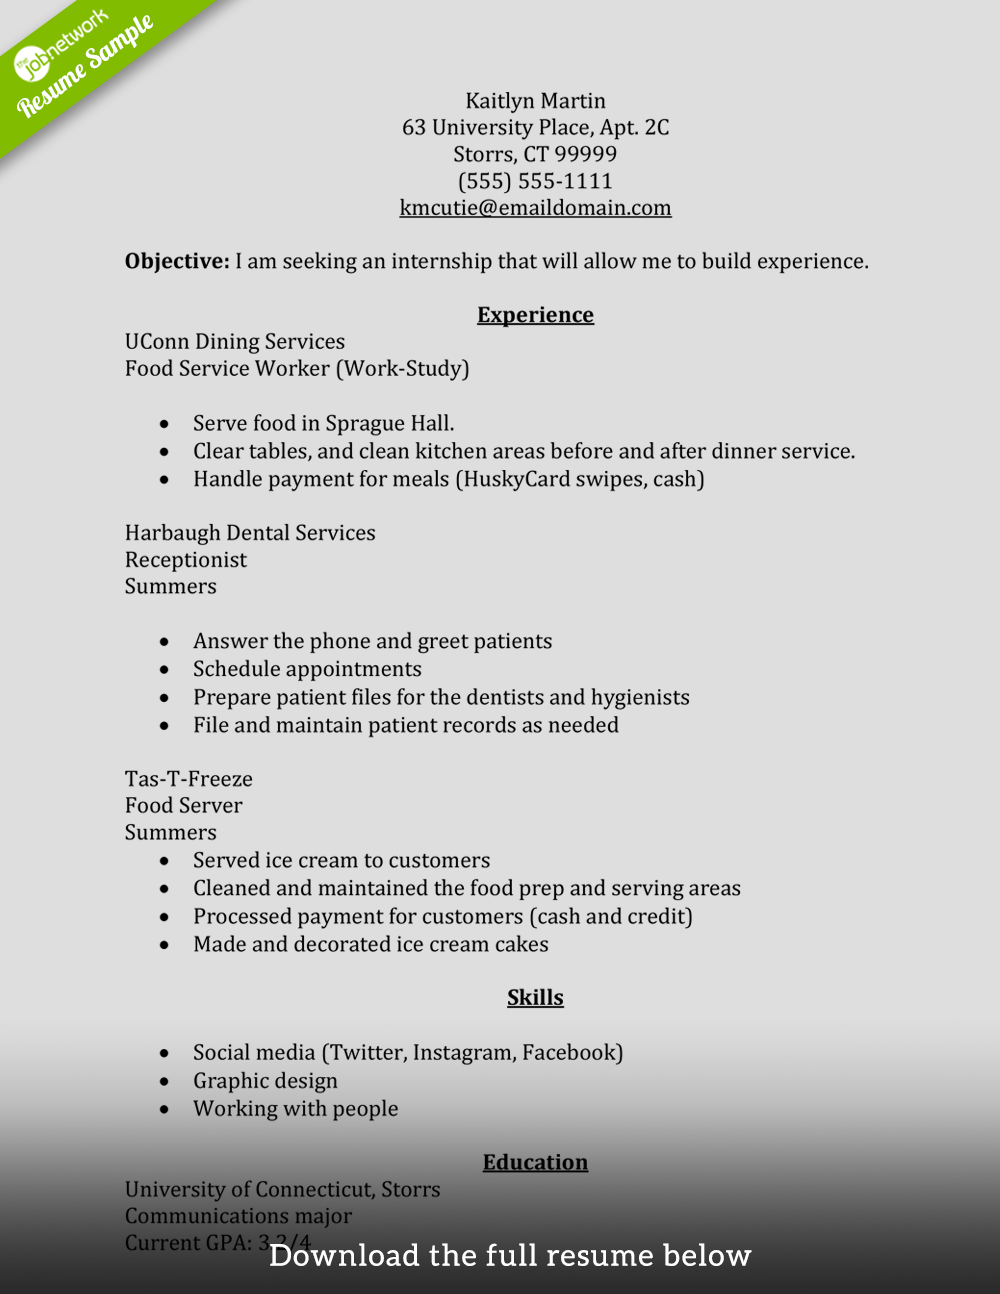 How To Write A Perfect Internship Resume Examples Included - Resumes For Internships